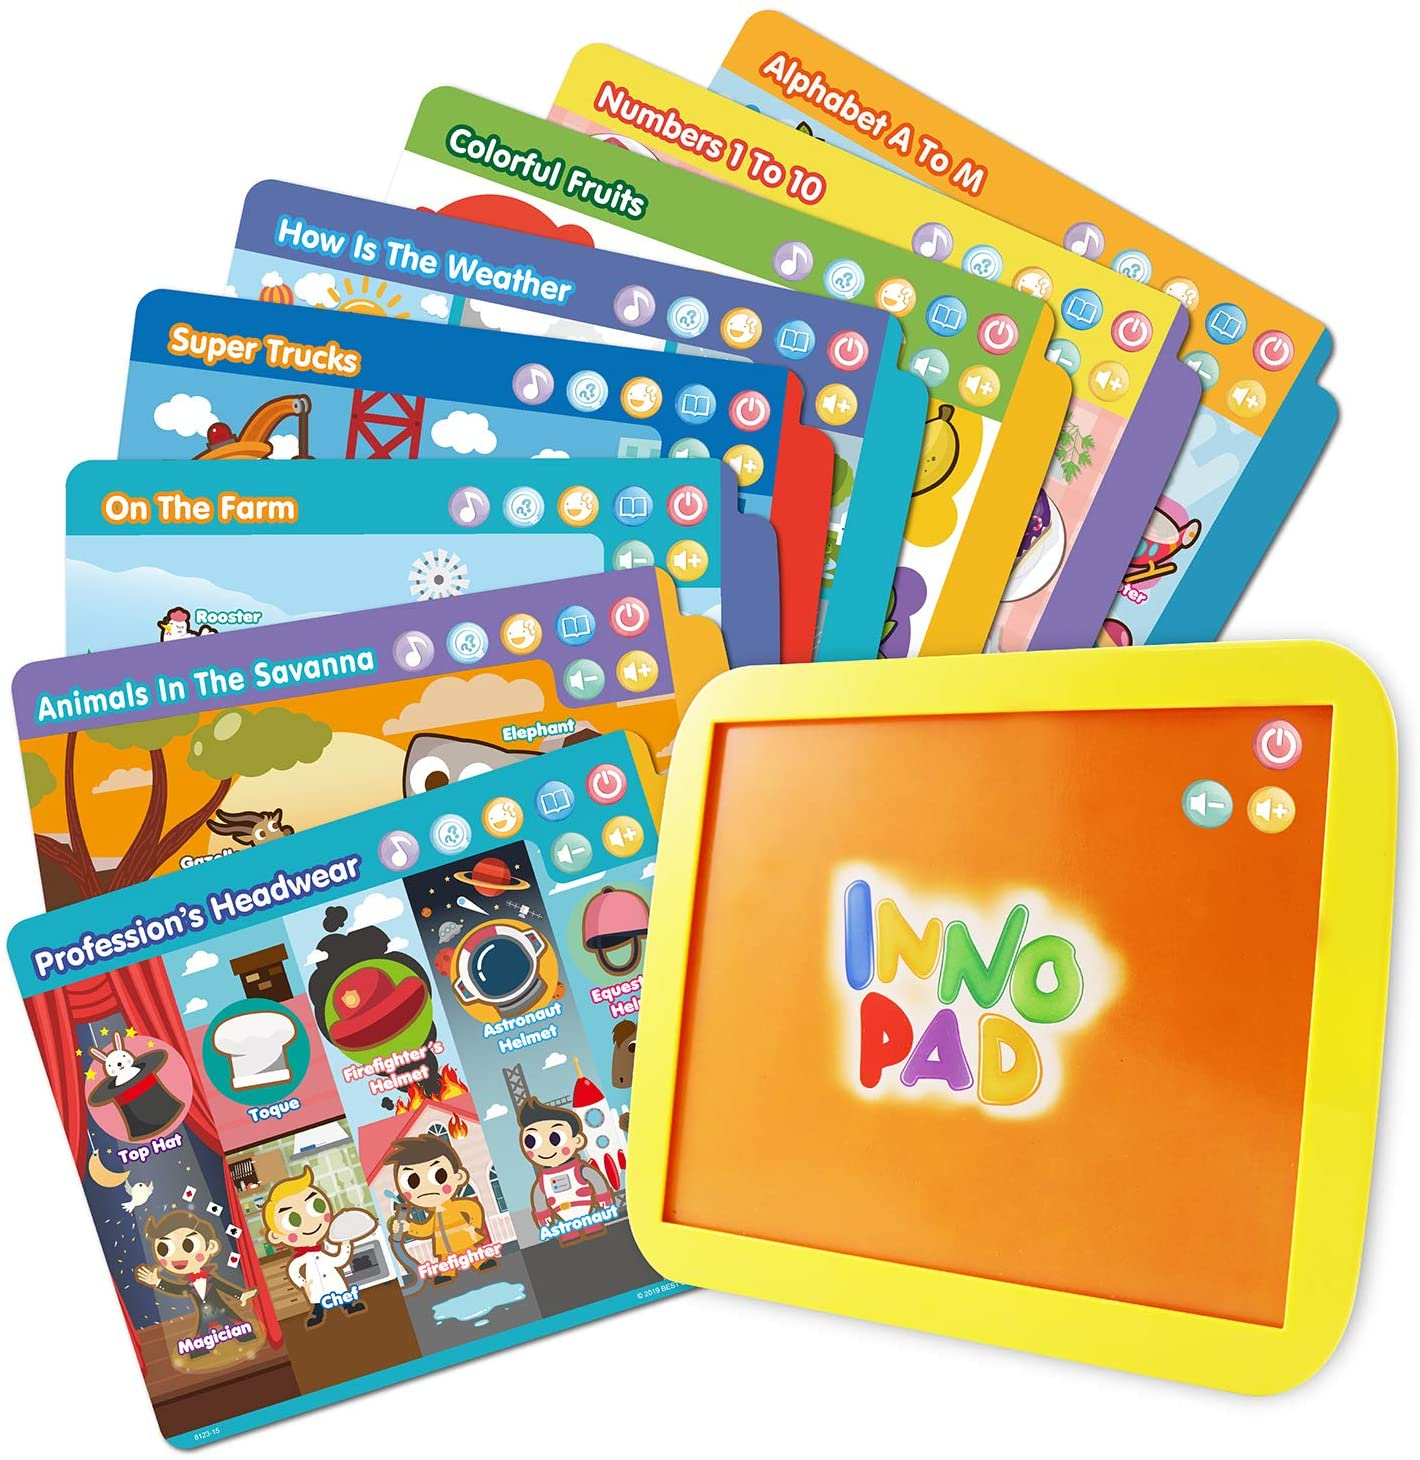 INNO PAD Educational Tablet Toy  Best Learning